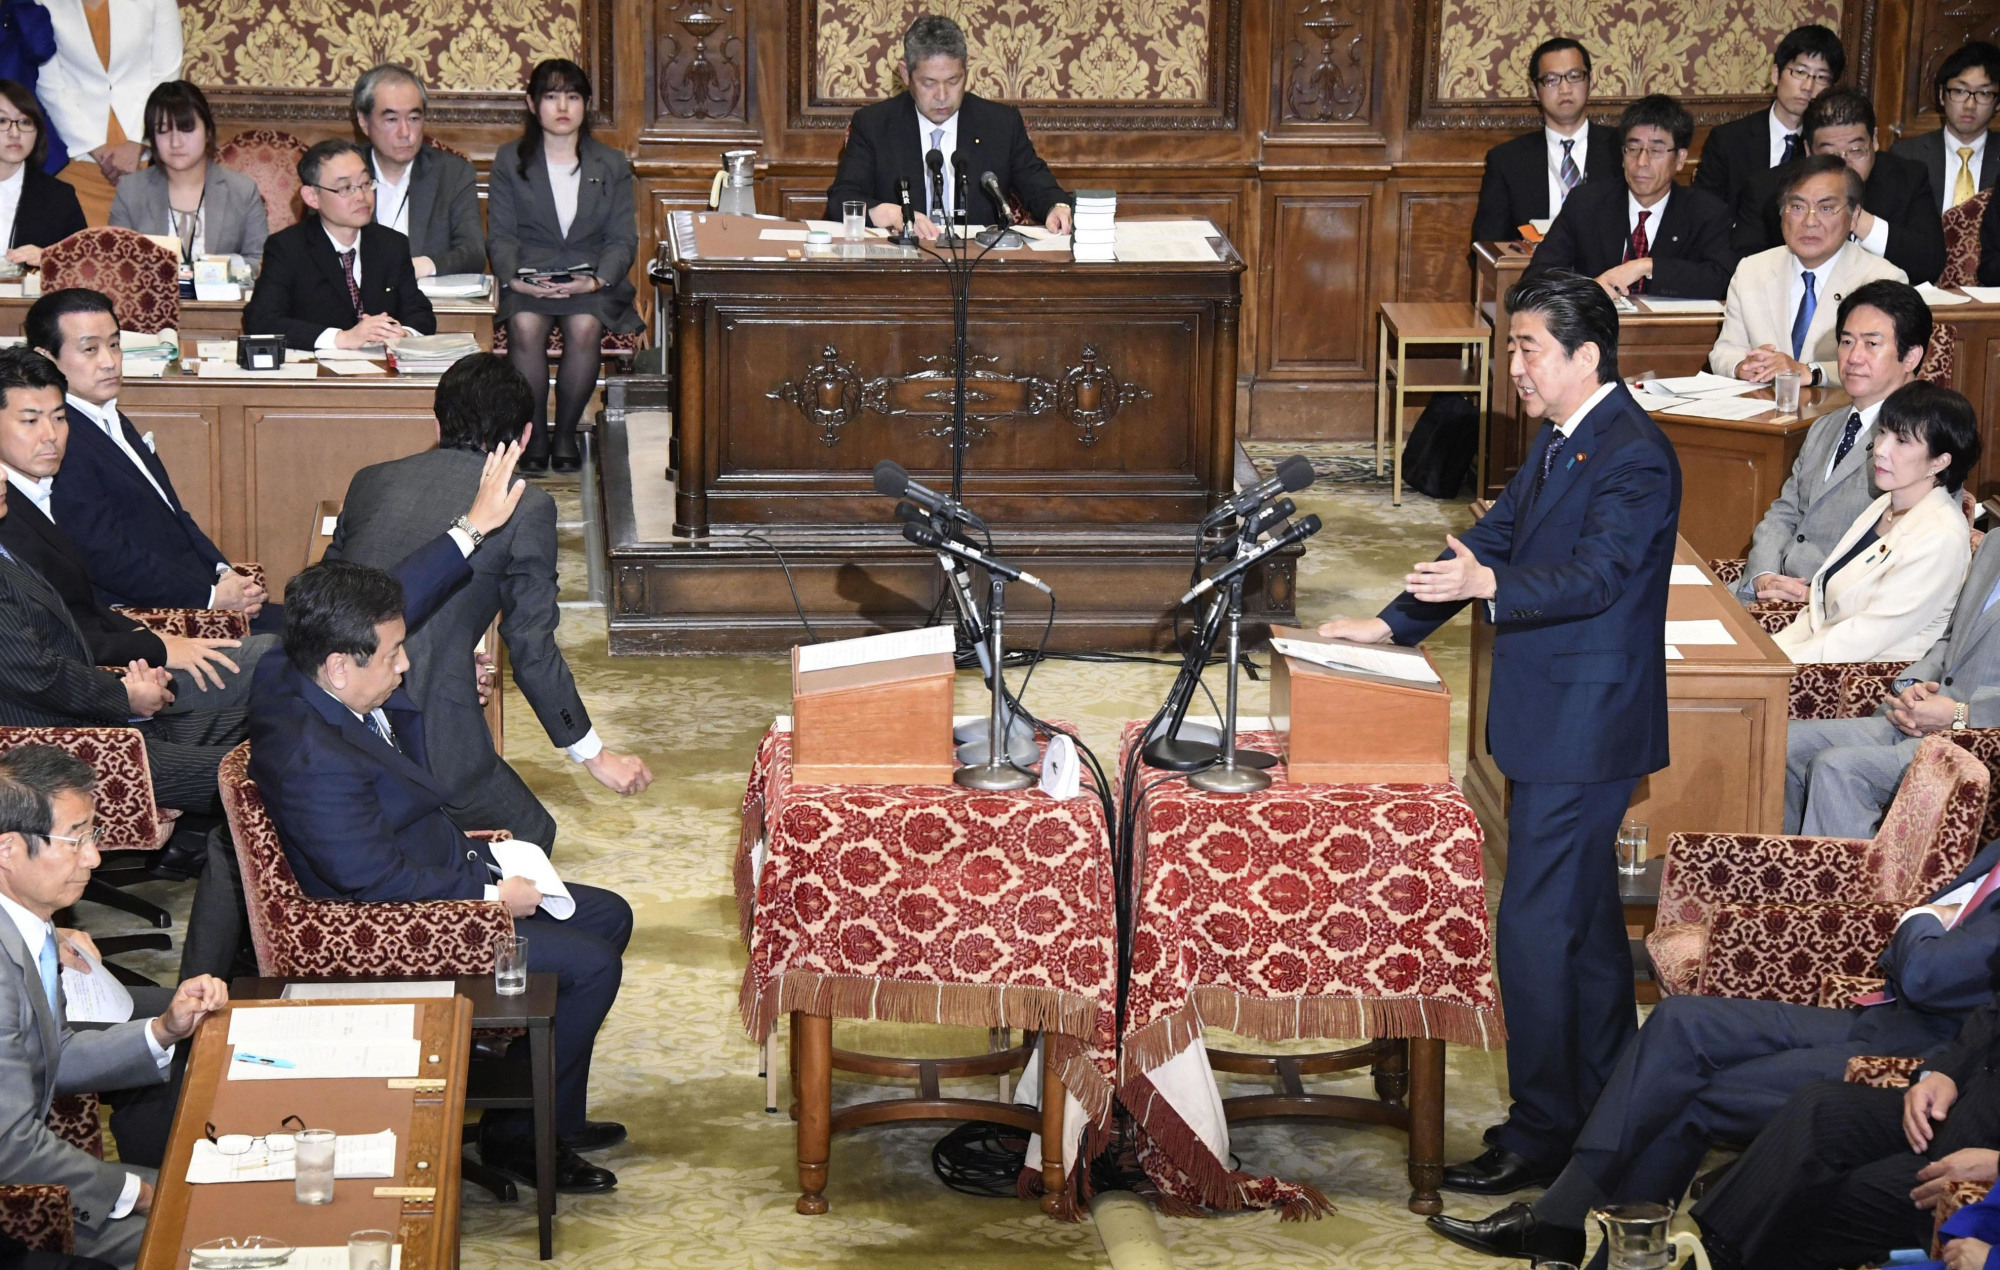 Prime Minister Shinzo Abe takes a question from Yukio Edano, head of the Constitutional Democratic Party of Japan, during a party leaders' debate on Wednesday in the Diet.  | KYODO